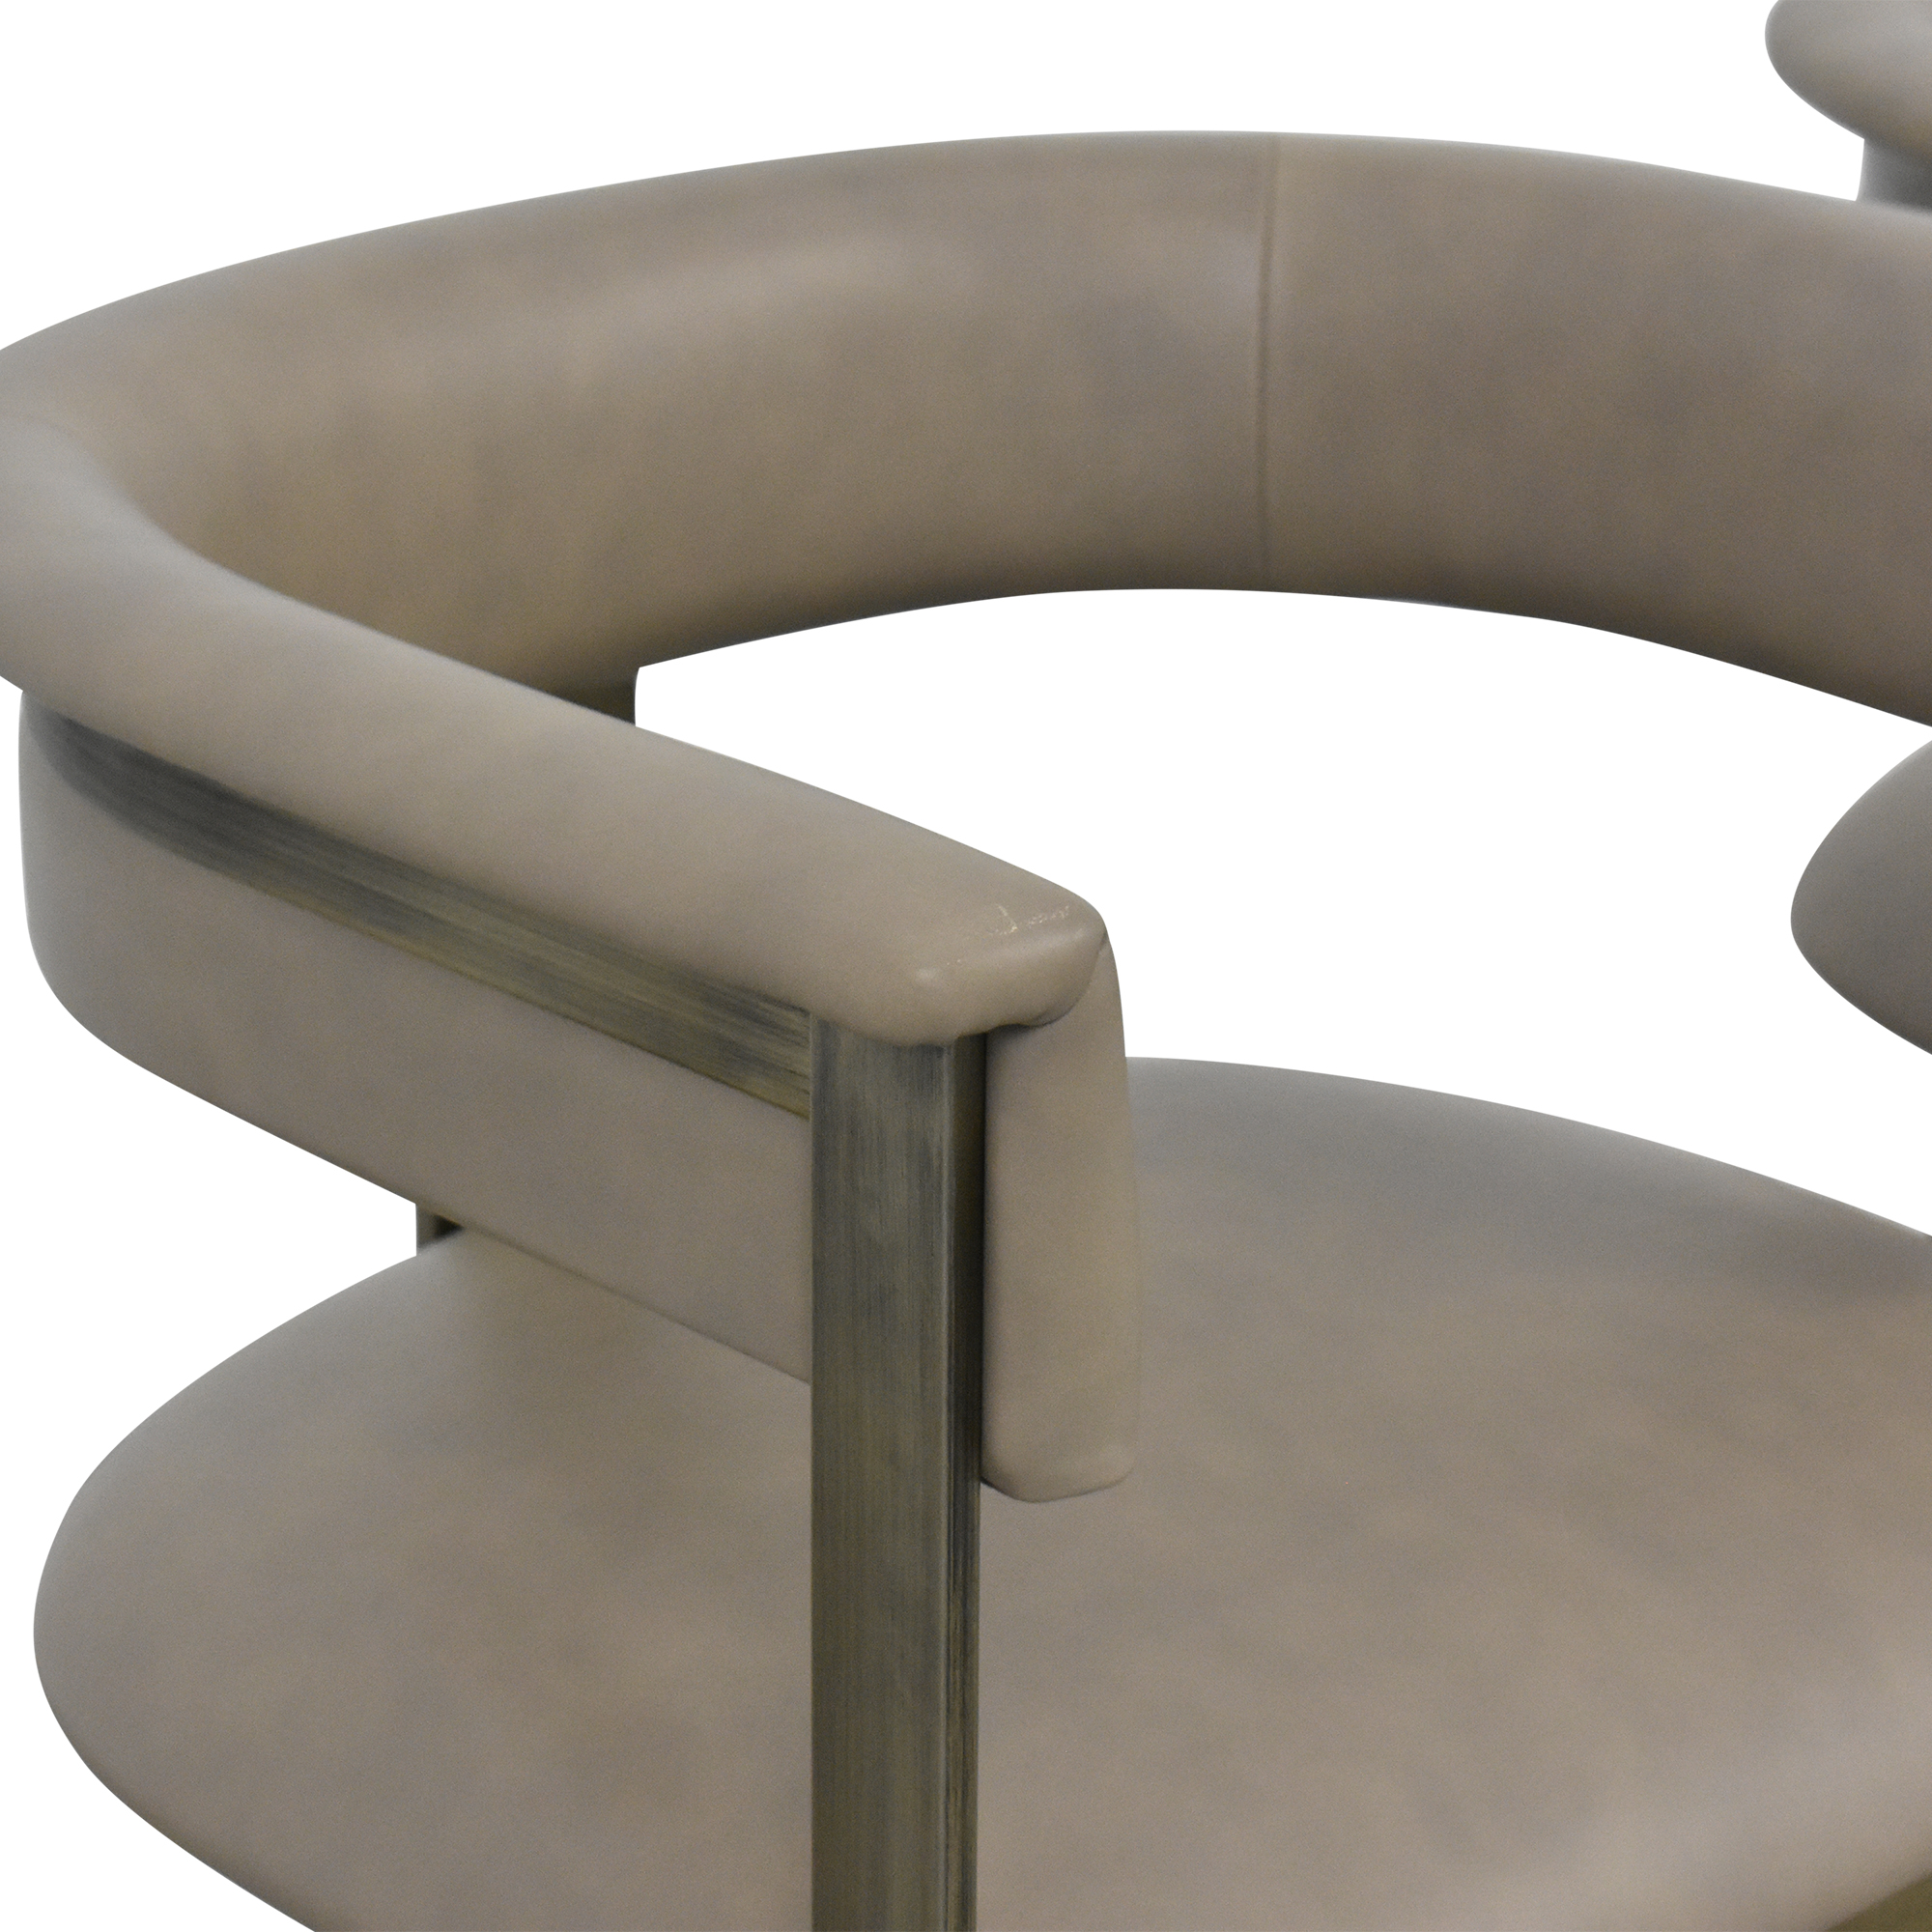 Interlude Home Interlude Home Darcy Dining Arm Chairs used